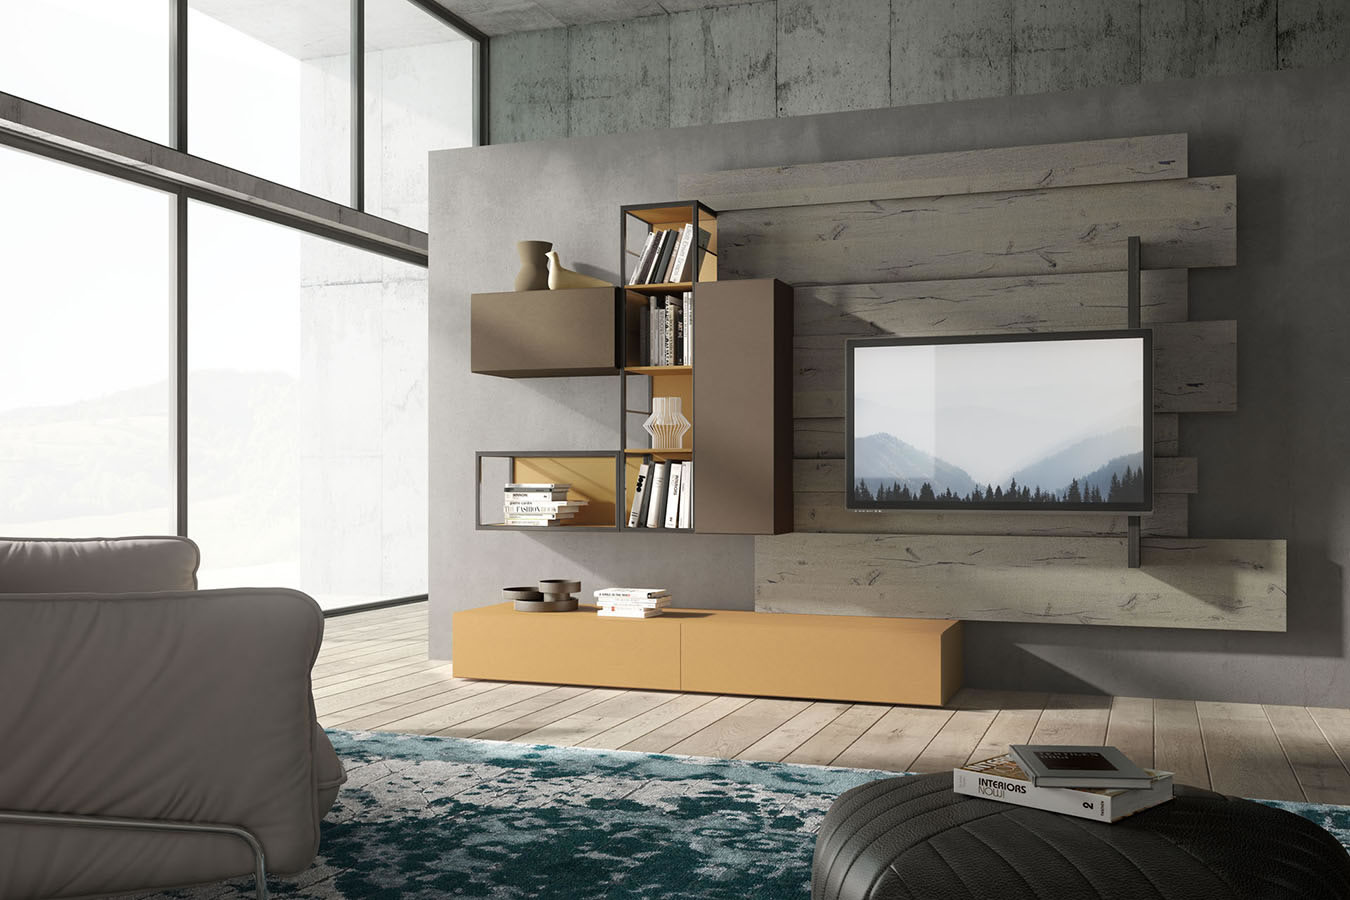 Versatile And Modular Create Your Own Composition Choose Finishes Endless Possibilities For This Modern Italian Wall Unit Furniture System